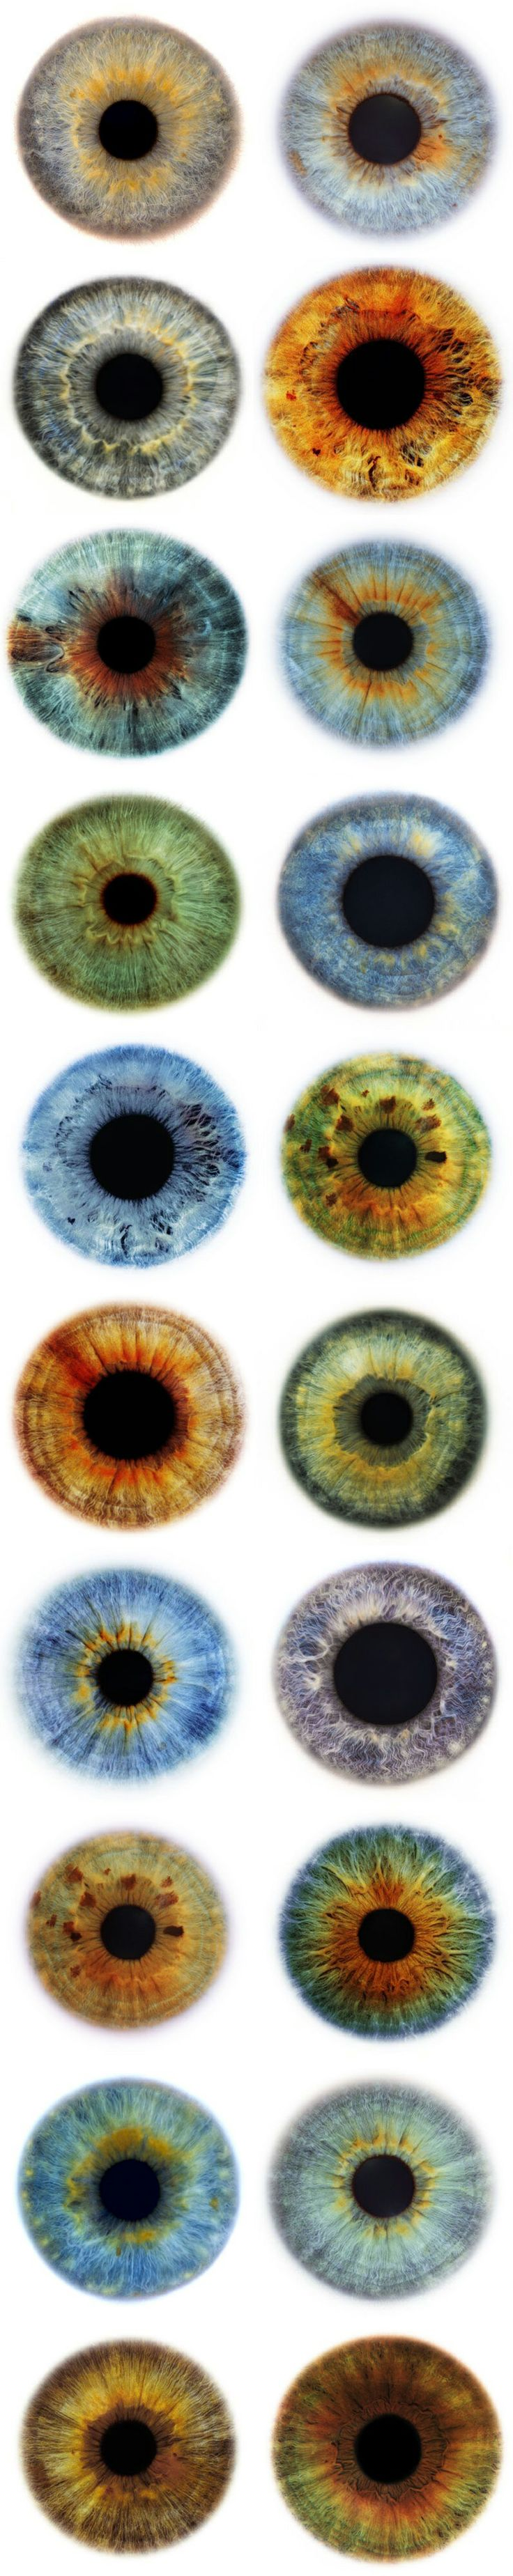 """Eyes are the windows to the universe"" - Eye Images by Rankin - Short URL: (http://bit.ly/1obylqw)"